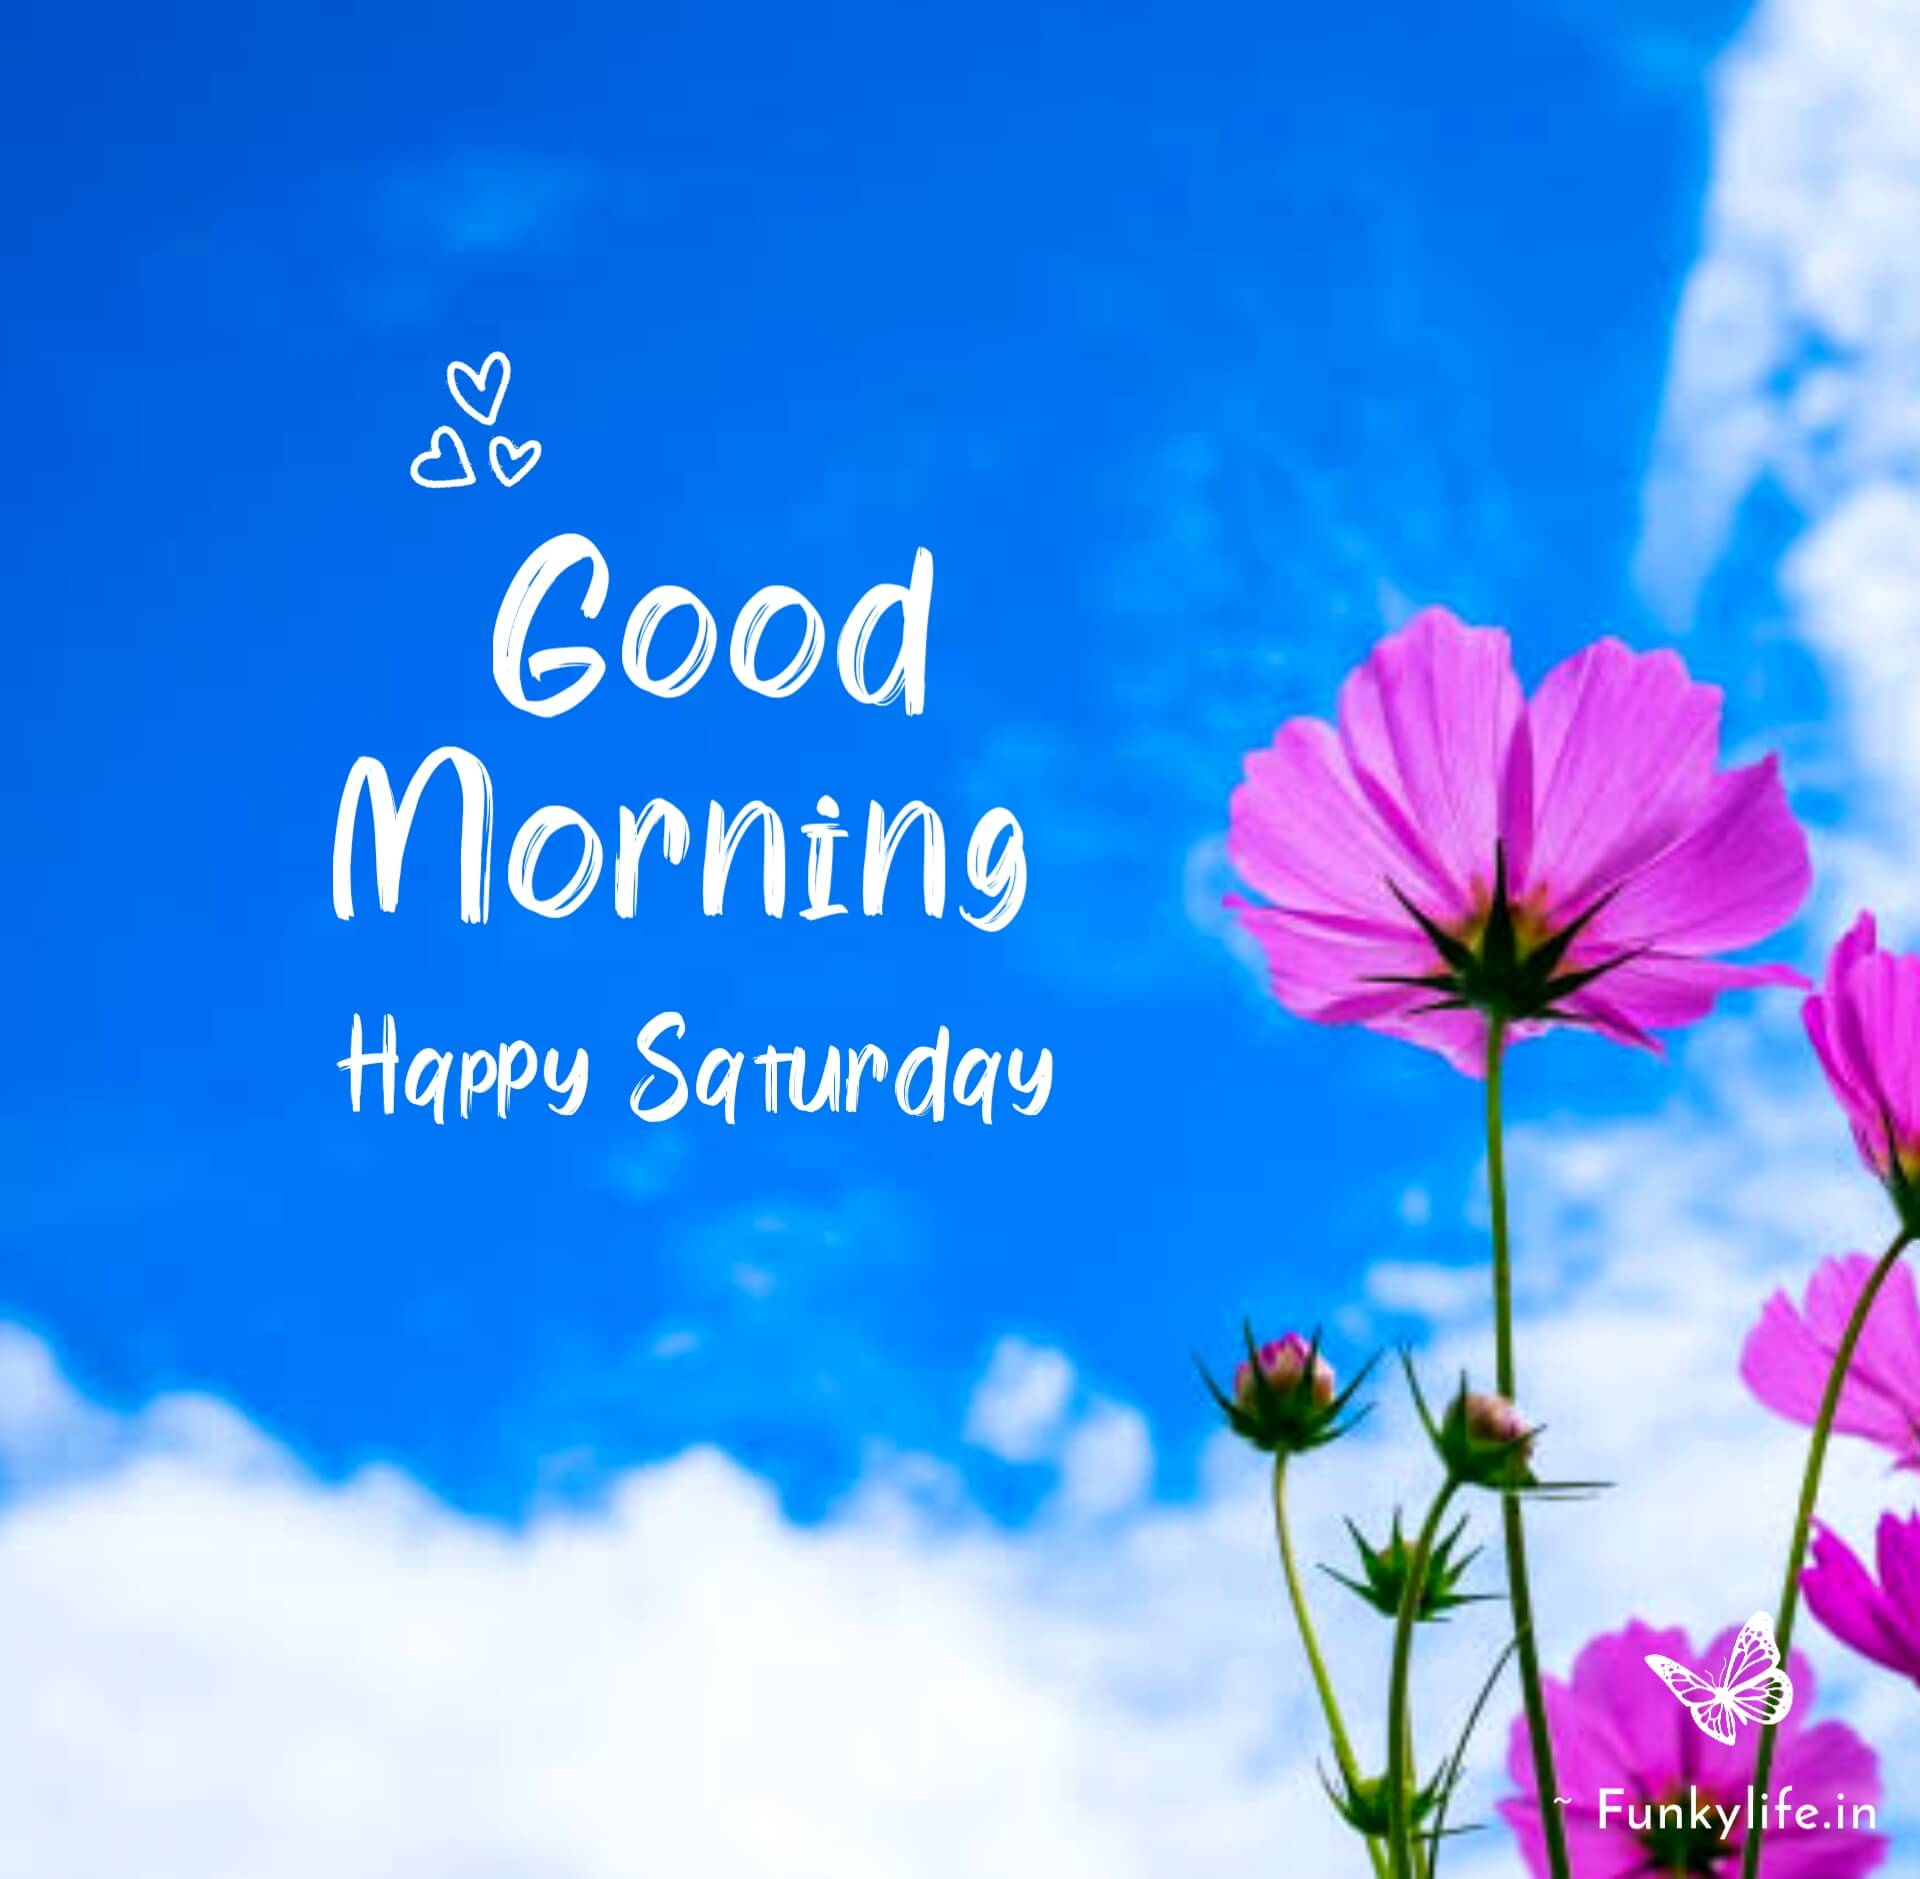 Good Morning Images for Saturday